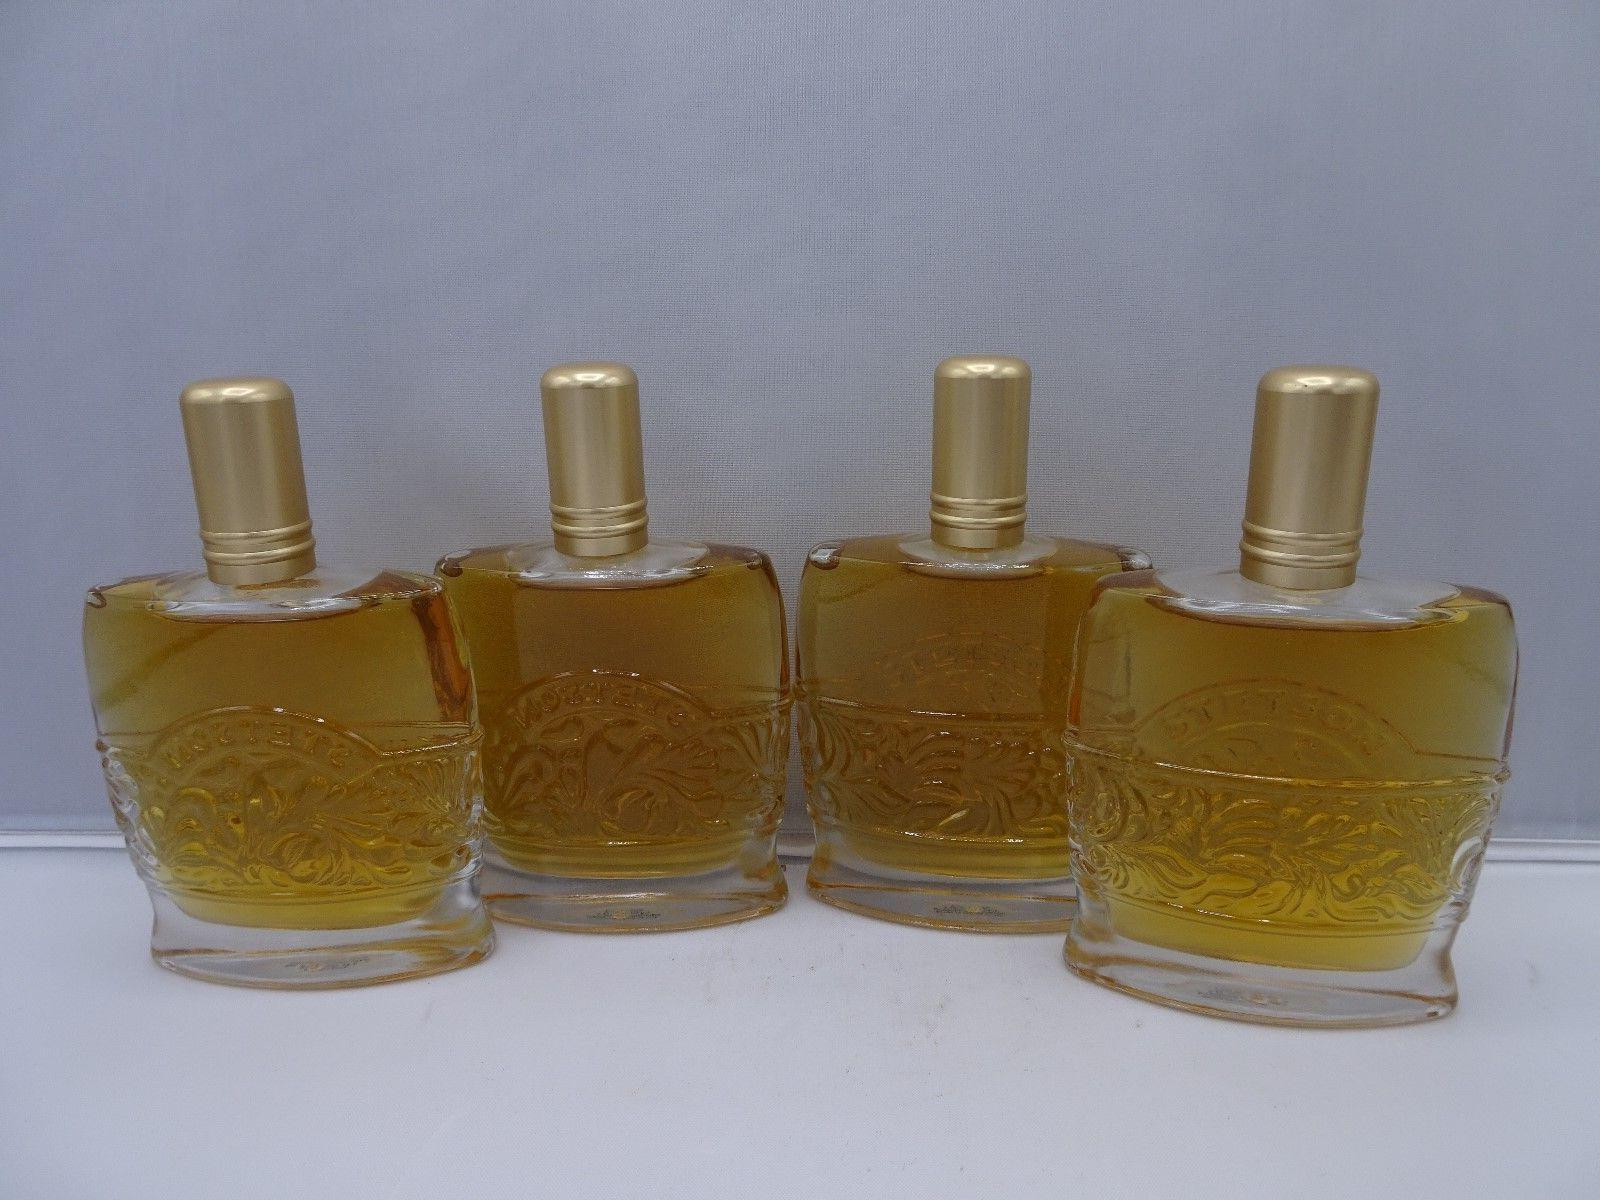 Stetson by Stetson for Men Cologne Splash 2 oz Each Lot Of 4